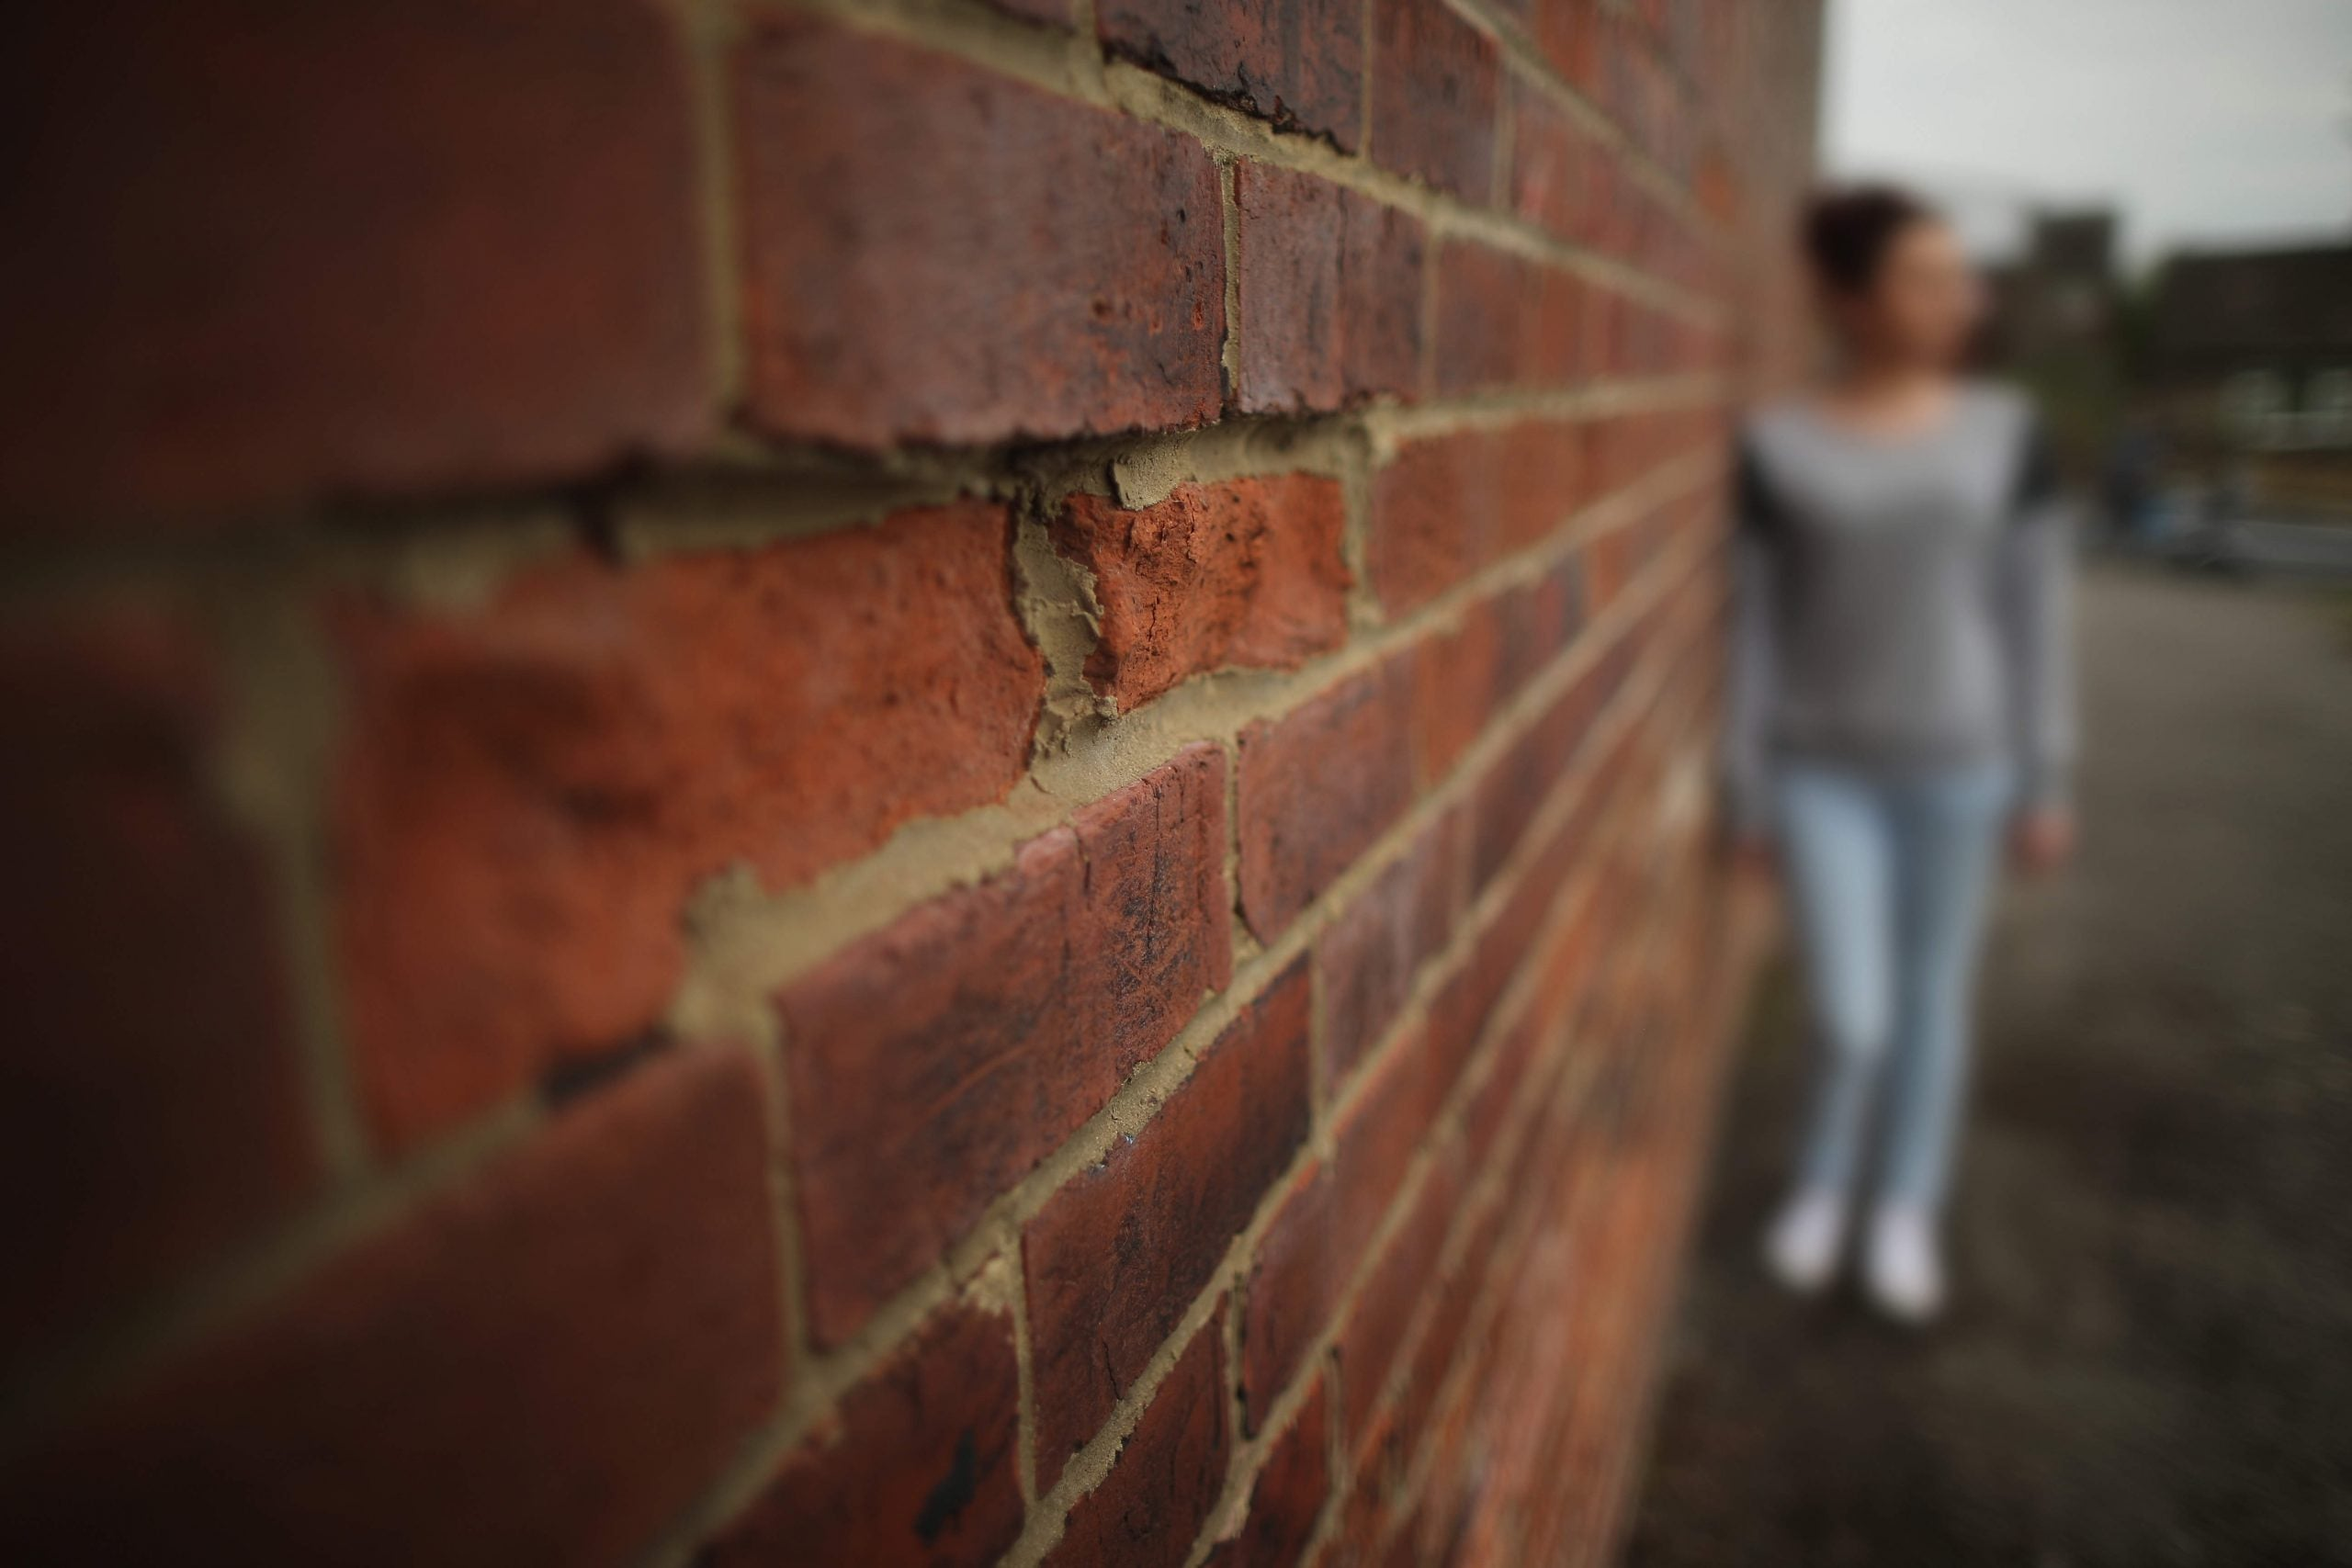 Women with autism: do they really suffer less than men?